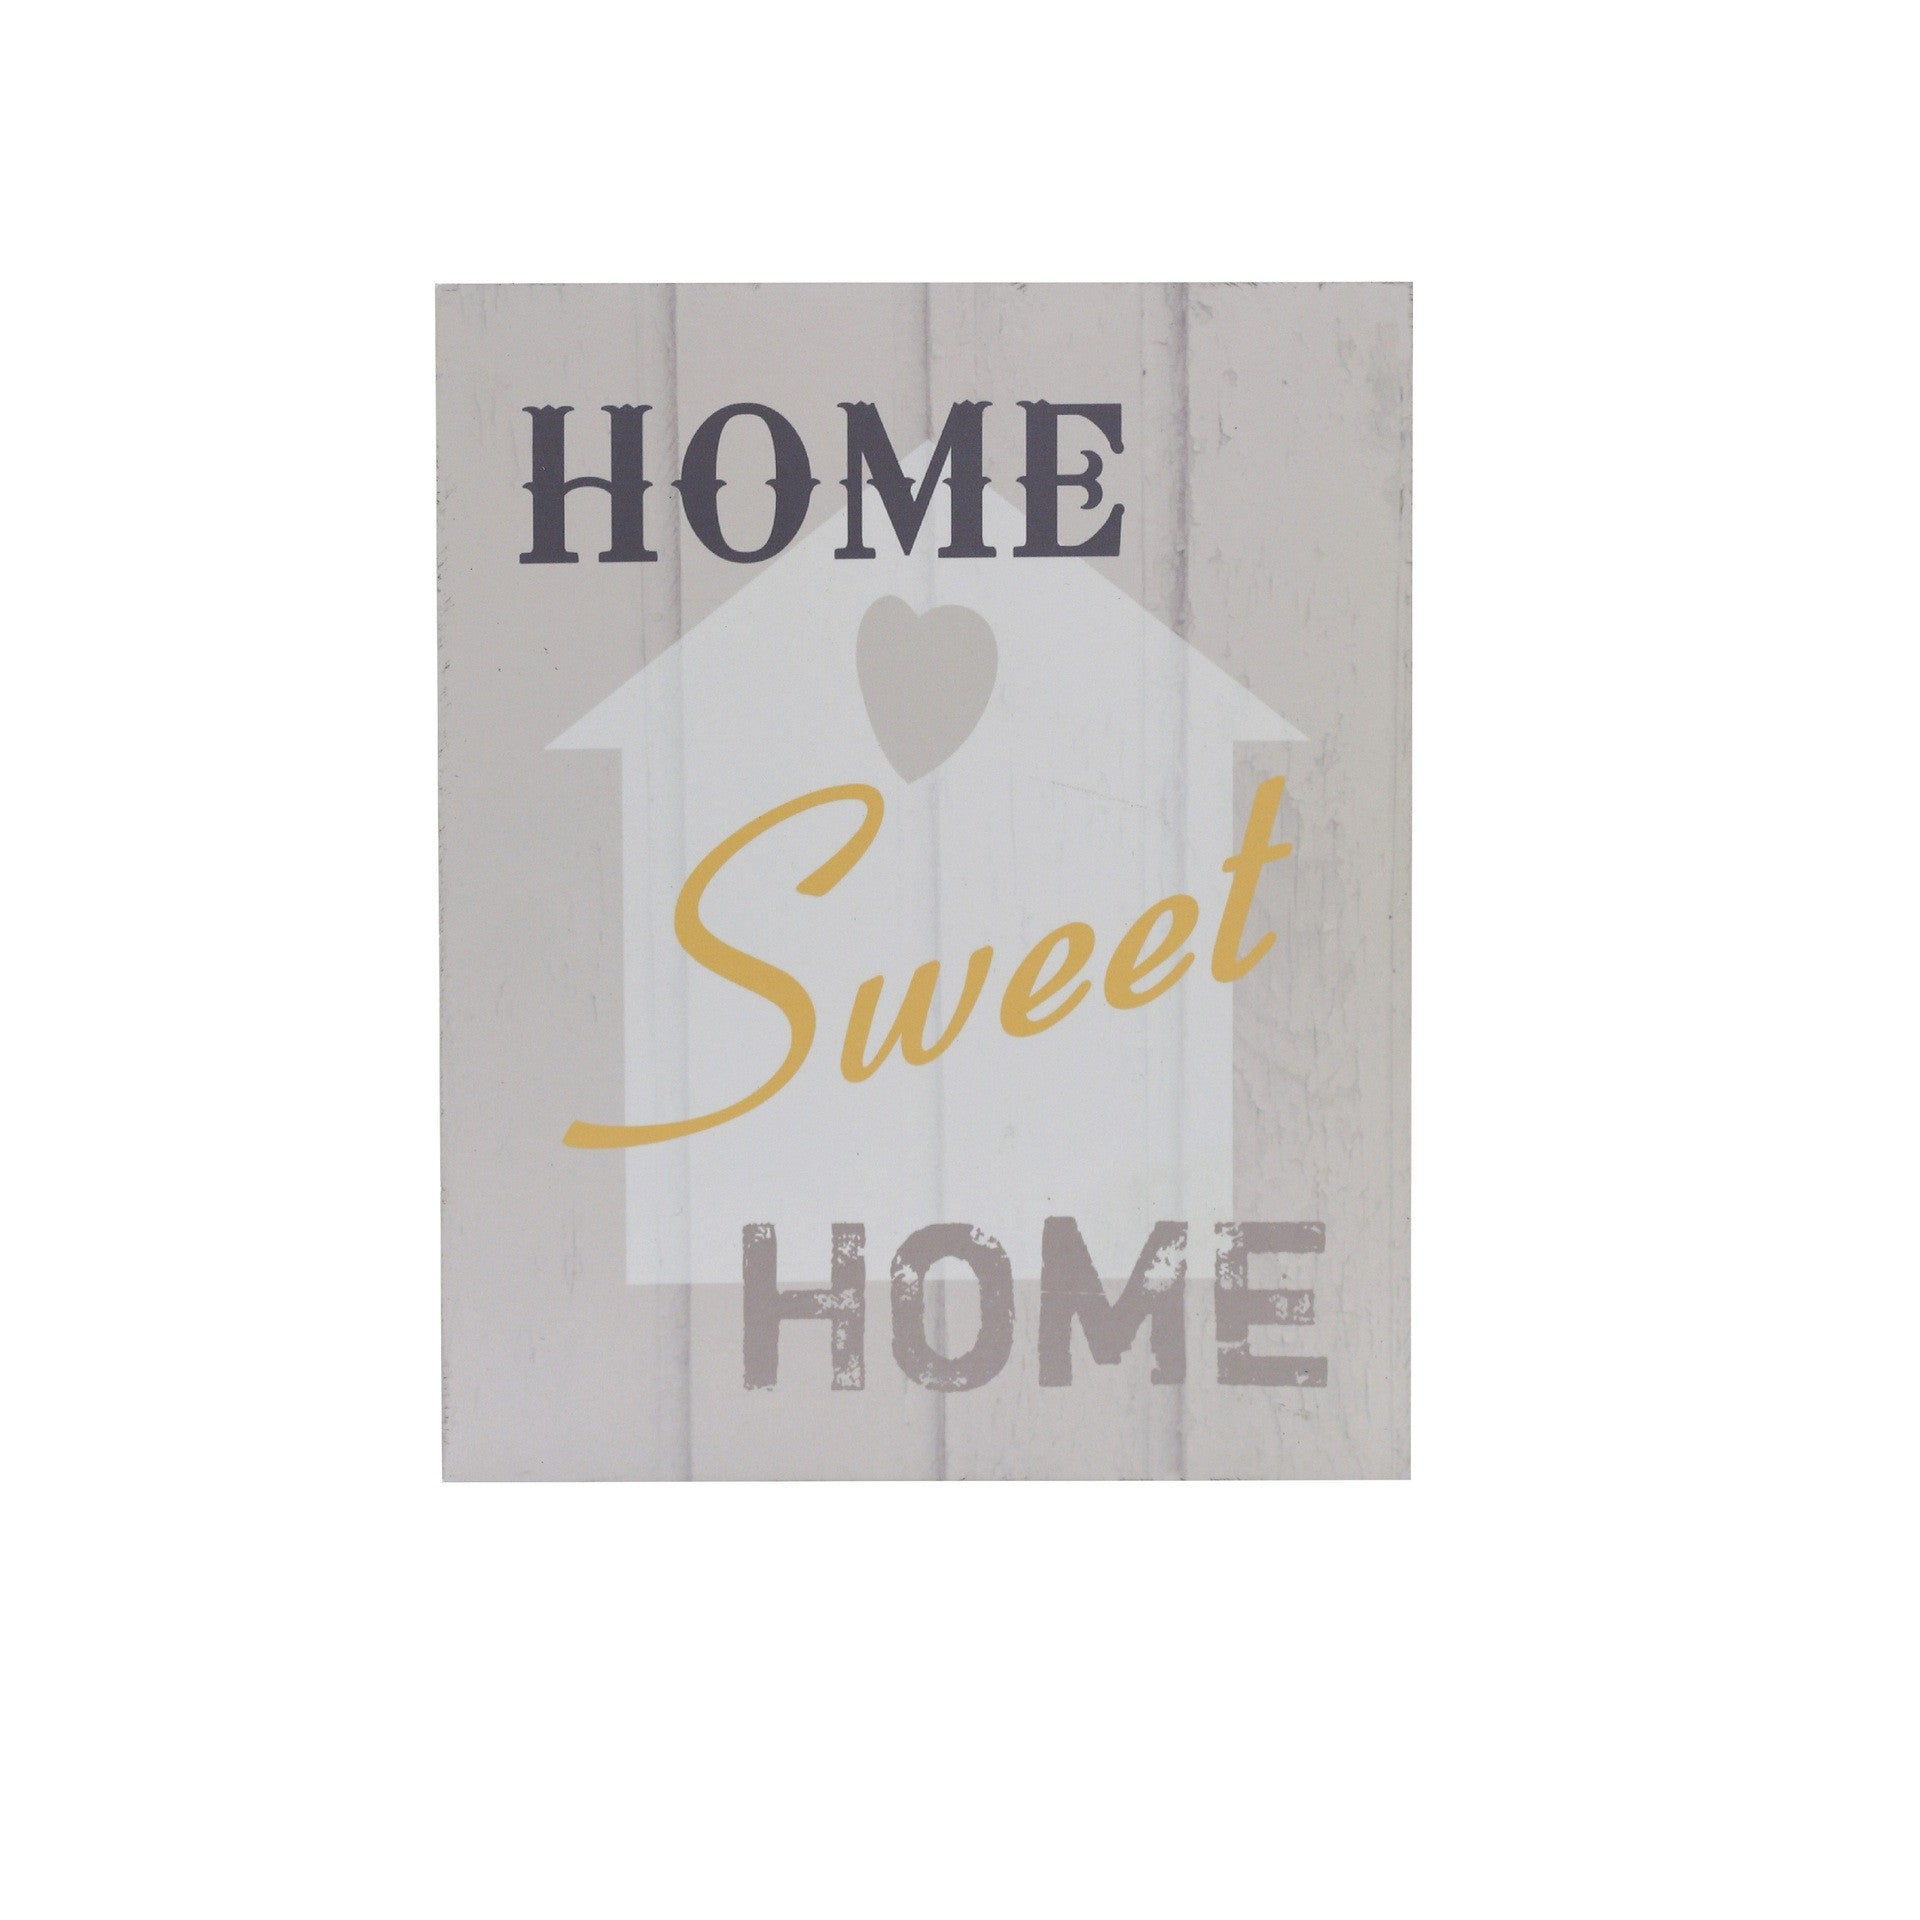 Premier Home Sweet Home Wall Plaque 2800704 Homely Ng